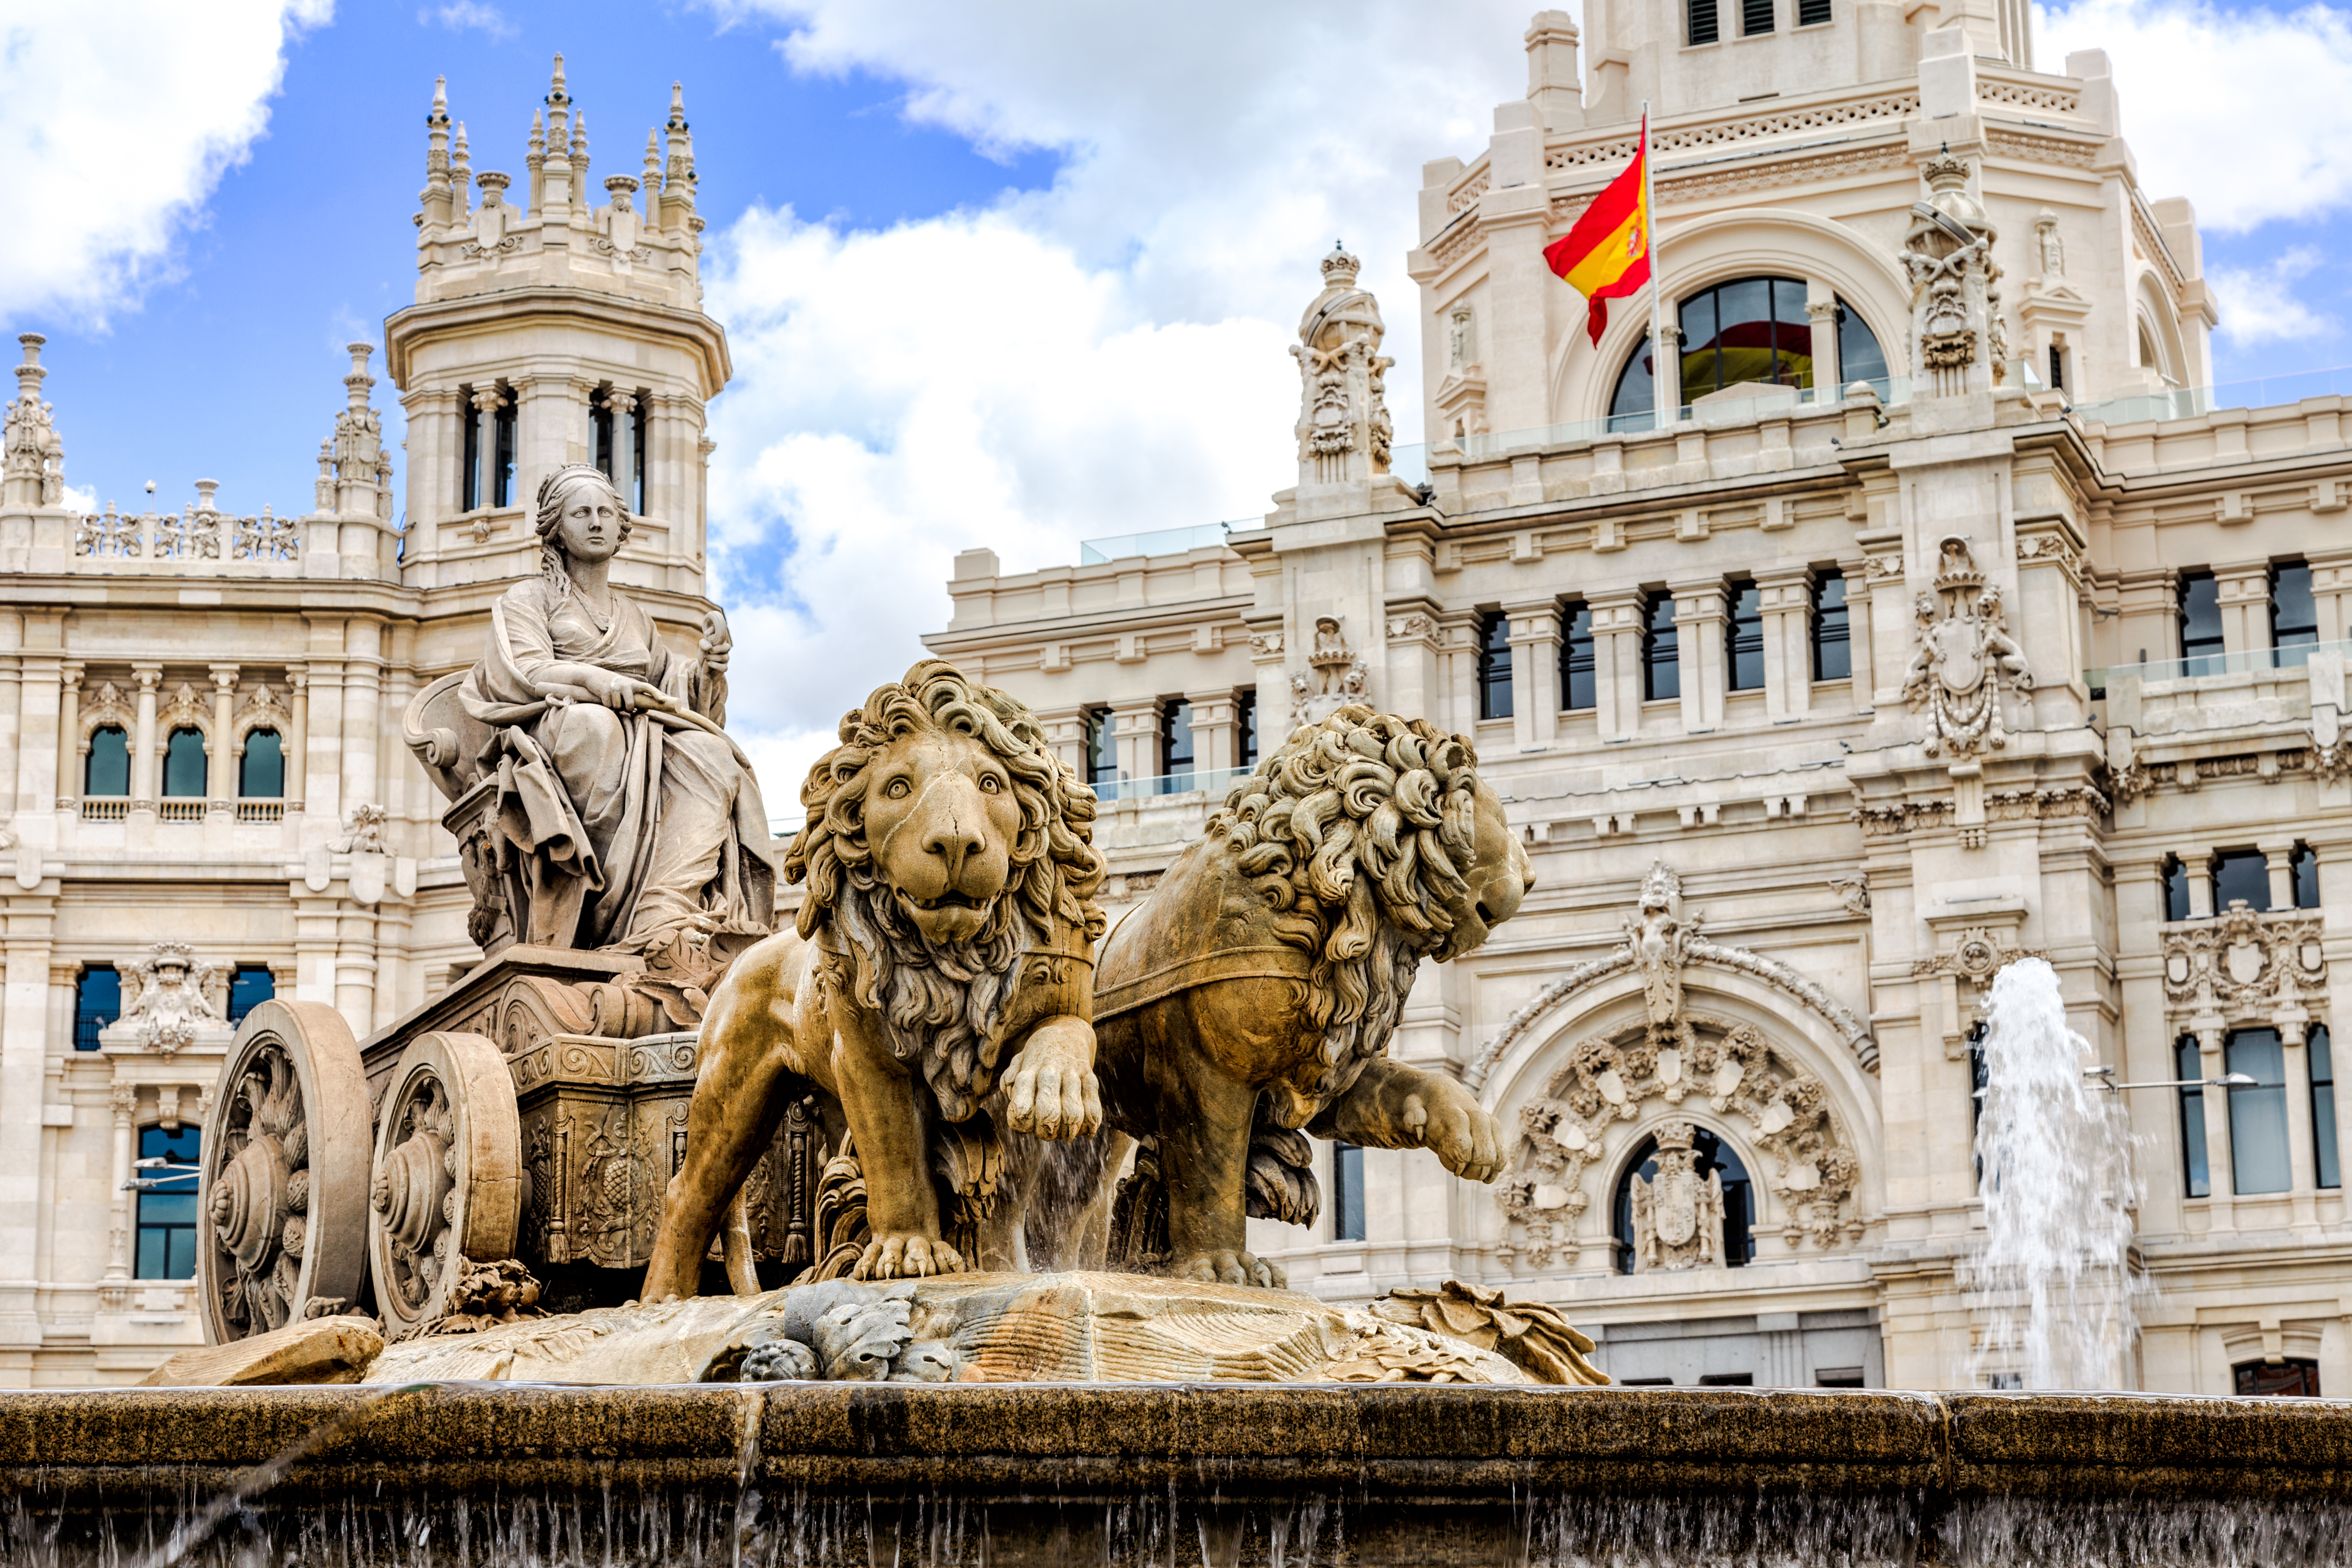 Community round-up: New hires in Spain and Brazil and extended temporary judgeships in Delaware